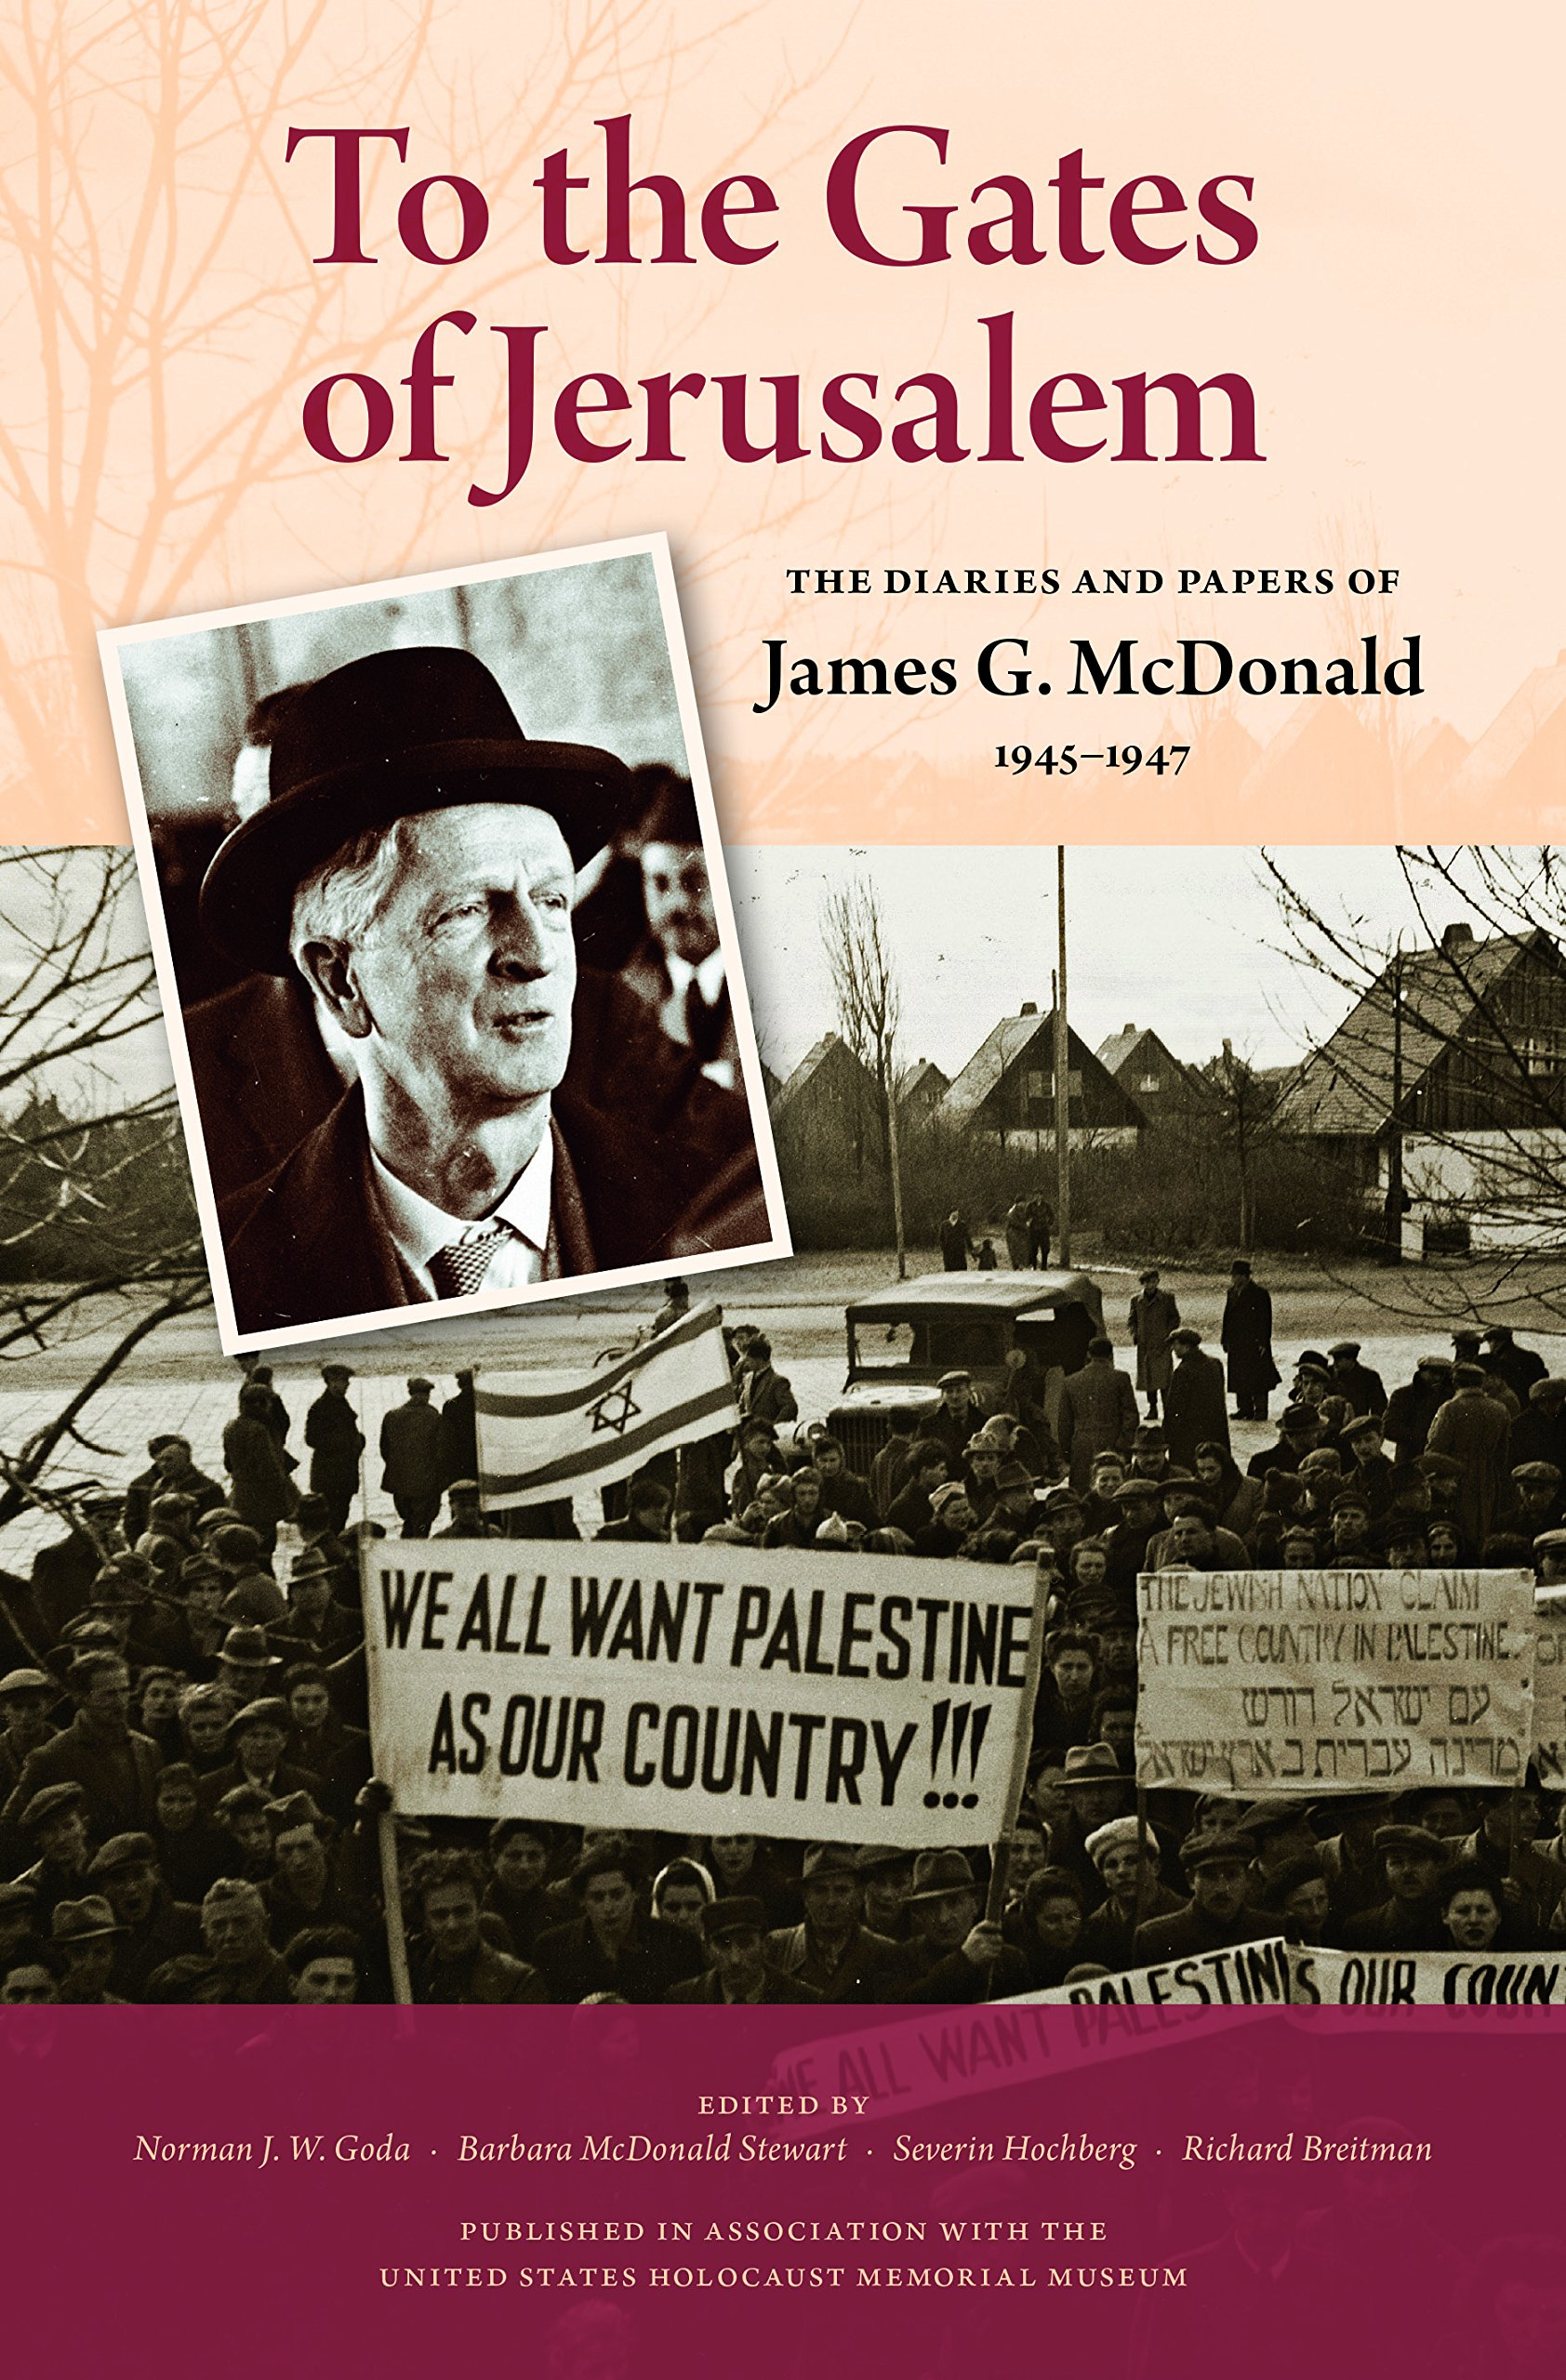 book cover of To the Gates of Jerusalem: The Diaries and Papers of James G. McDonald, 1945-1947